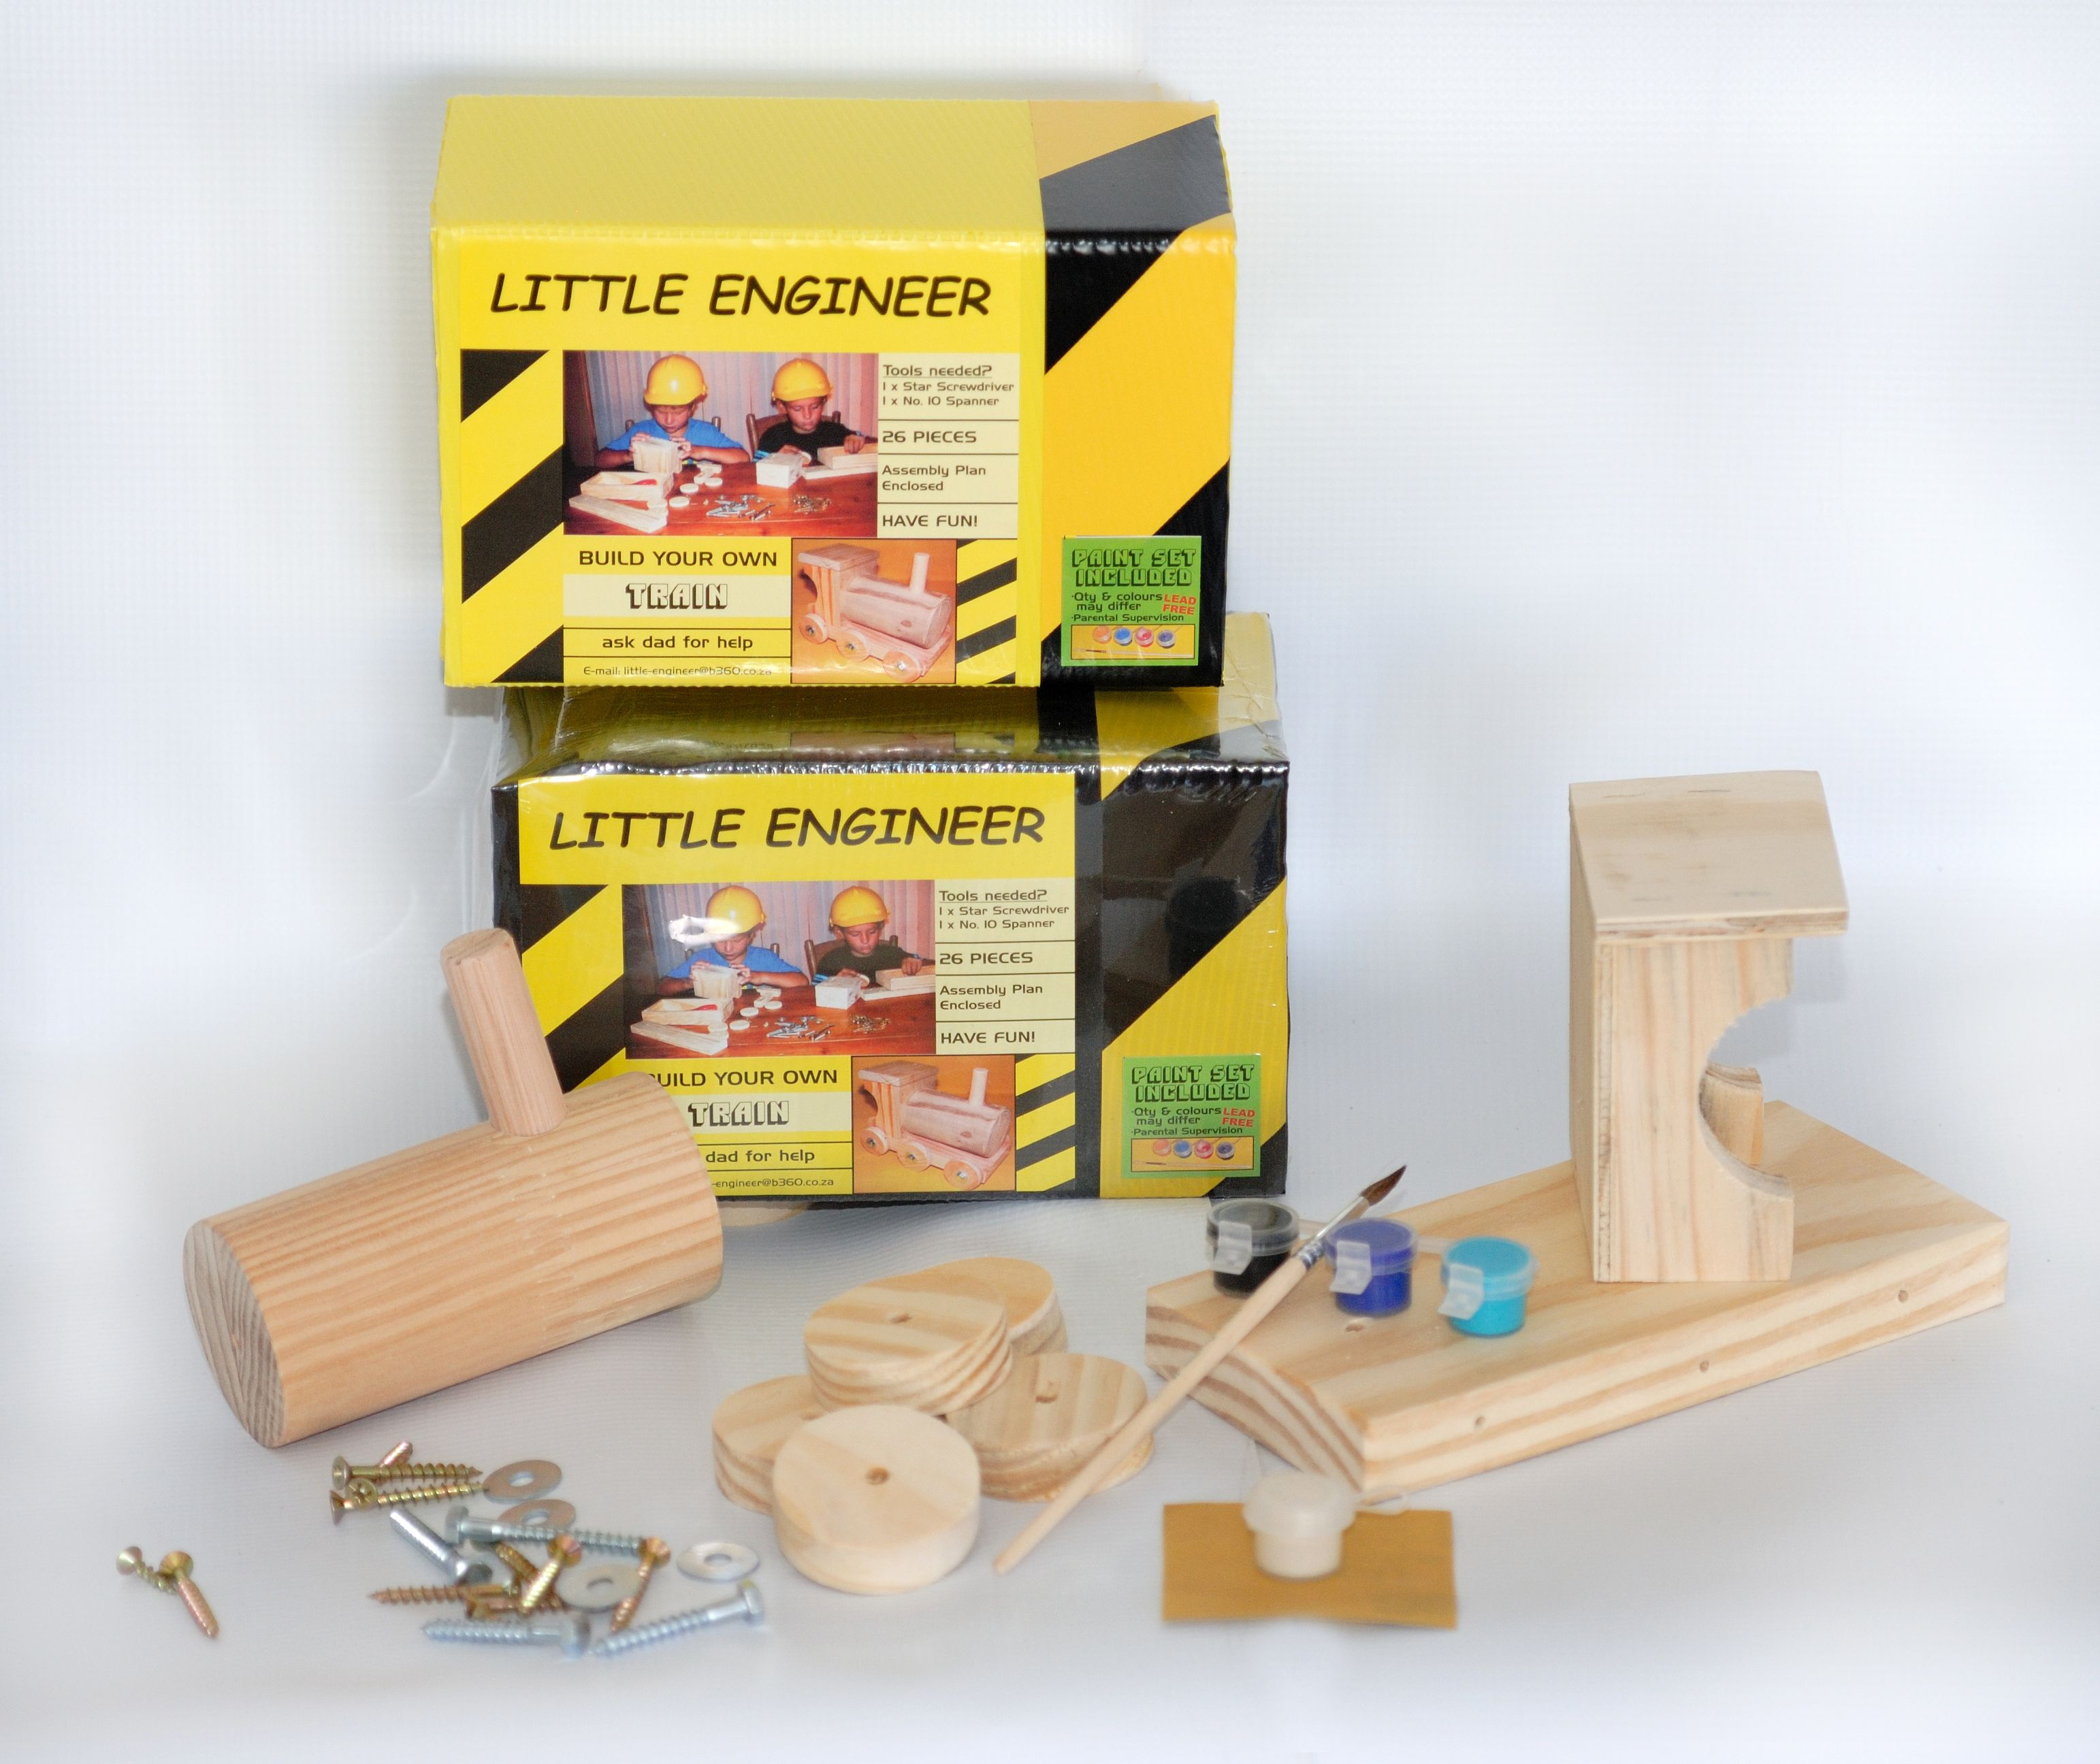 10 best little engineer images in 2014 | toys, wooden toys